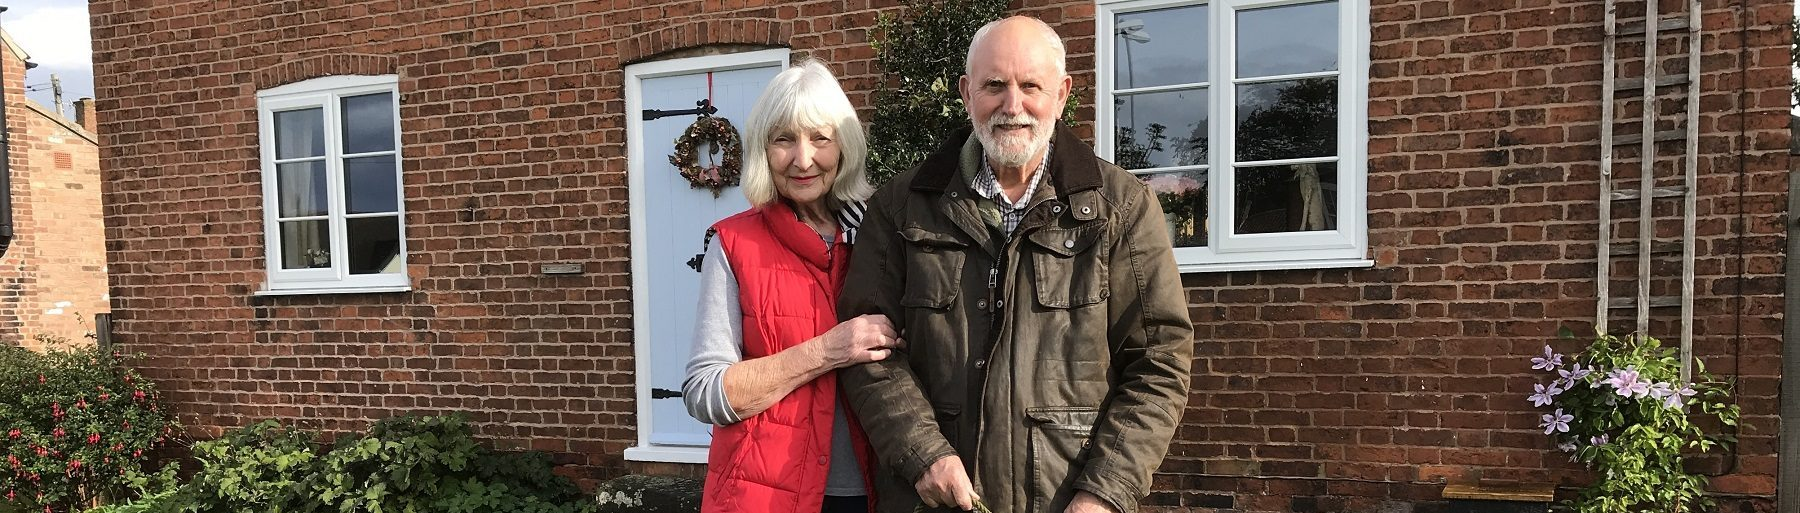 Picture of patient and his partner outside their home